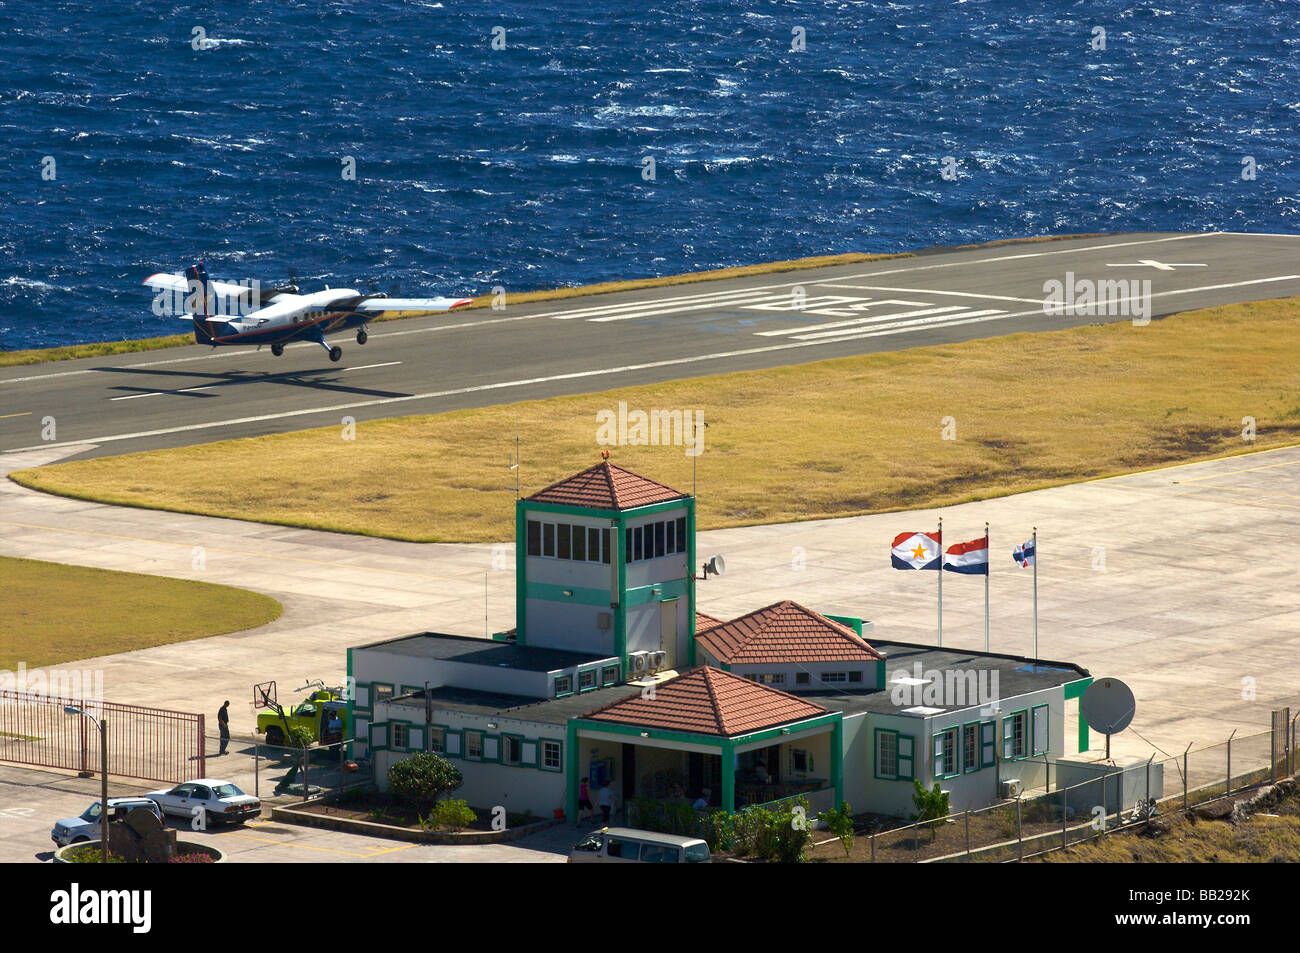 Saba airport the shortest commercial runway in the world - Stock Image